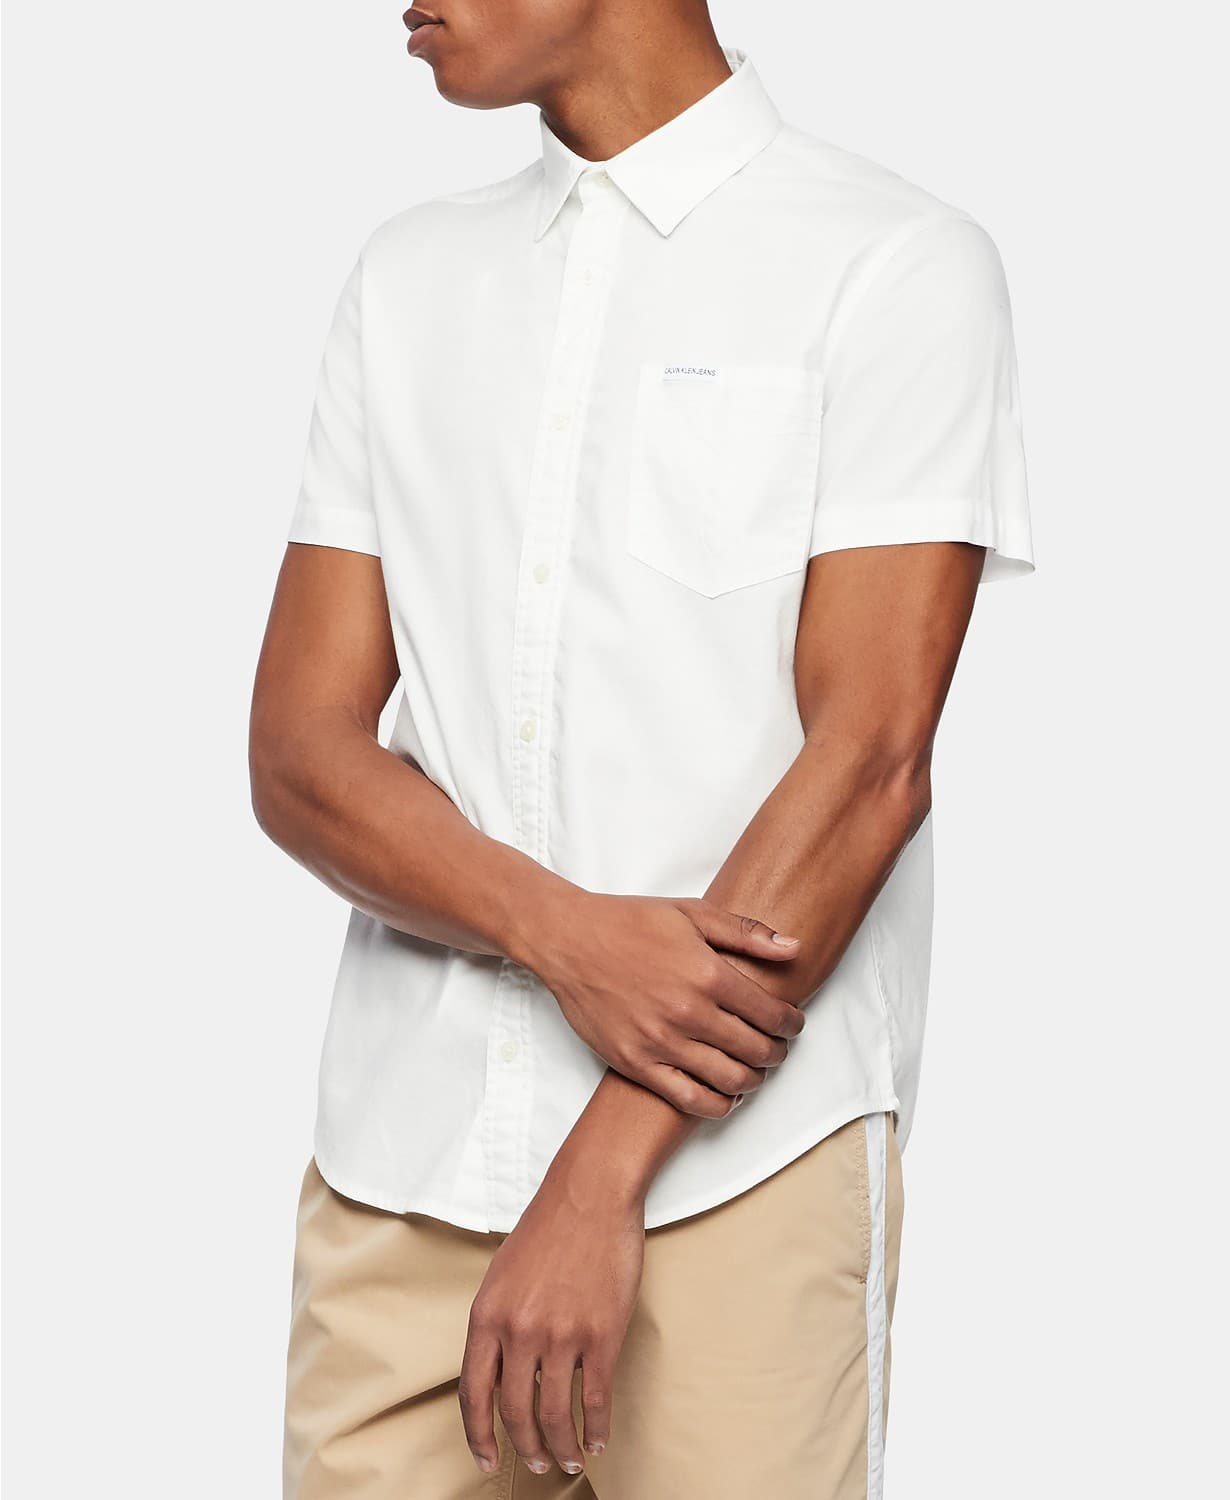 Calvin Klein Men's Button-Down Short Sleeve Shirts (select shirts) for $13.06 at Macy's (ship to store)